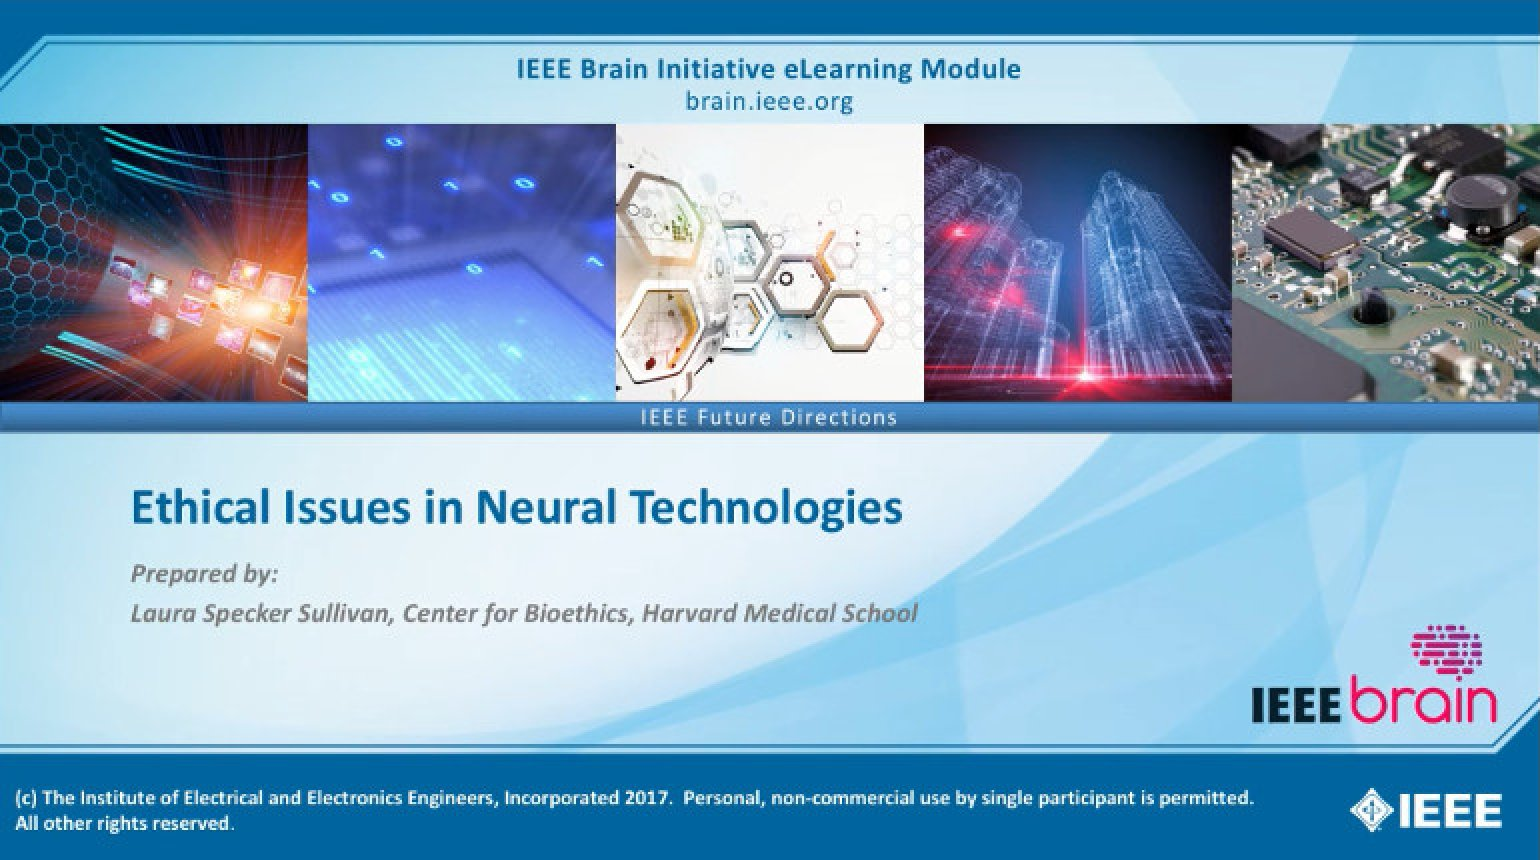 Ethical Issues in Neural Technologies